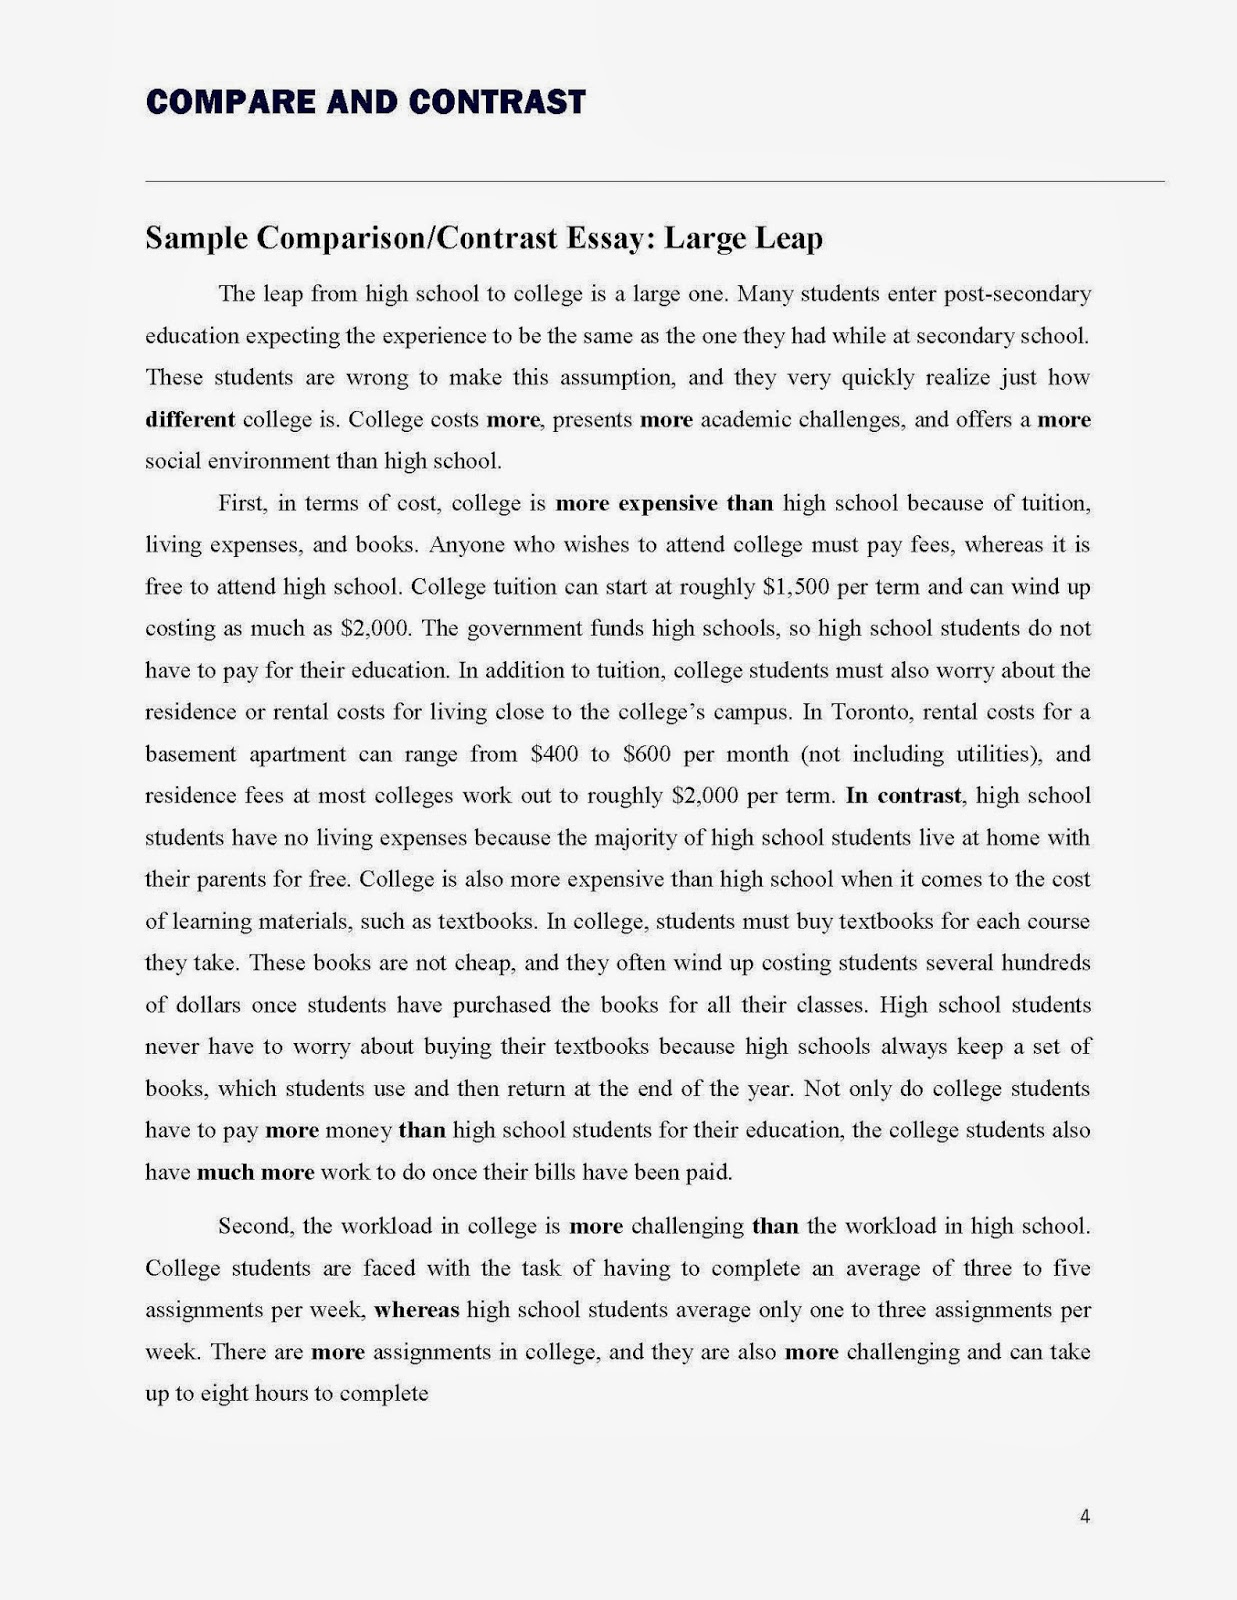 011 Compare And Contrast Essay Compareandcontrastessay Page 4h125 Frightening Sample 4th Grade Introduction Paragraph Ideas Full